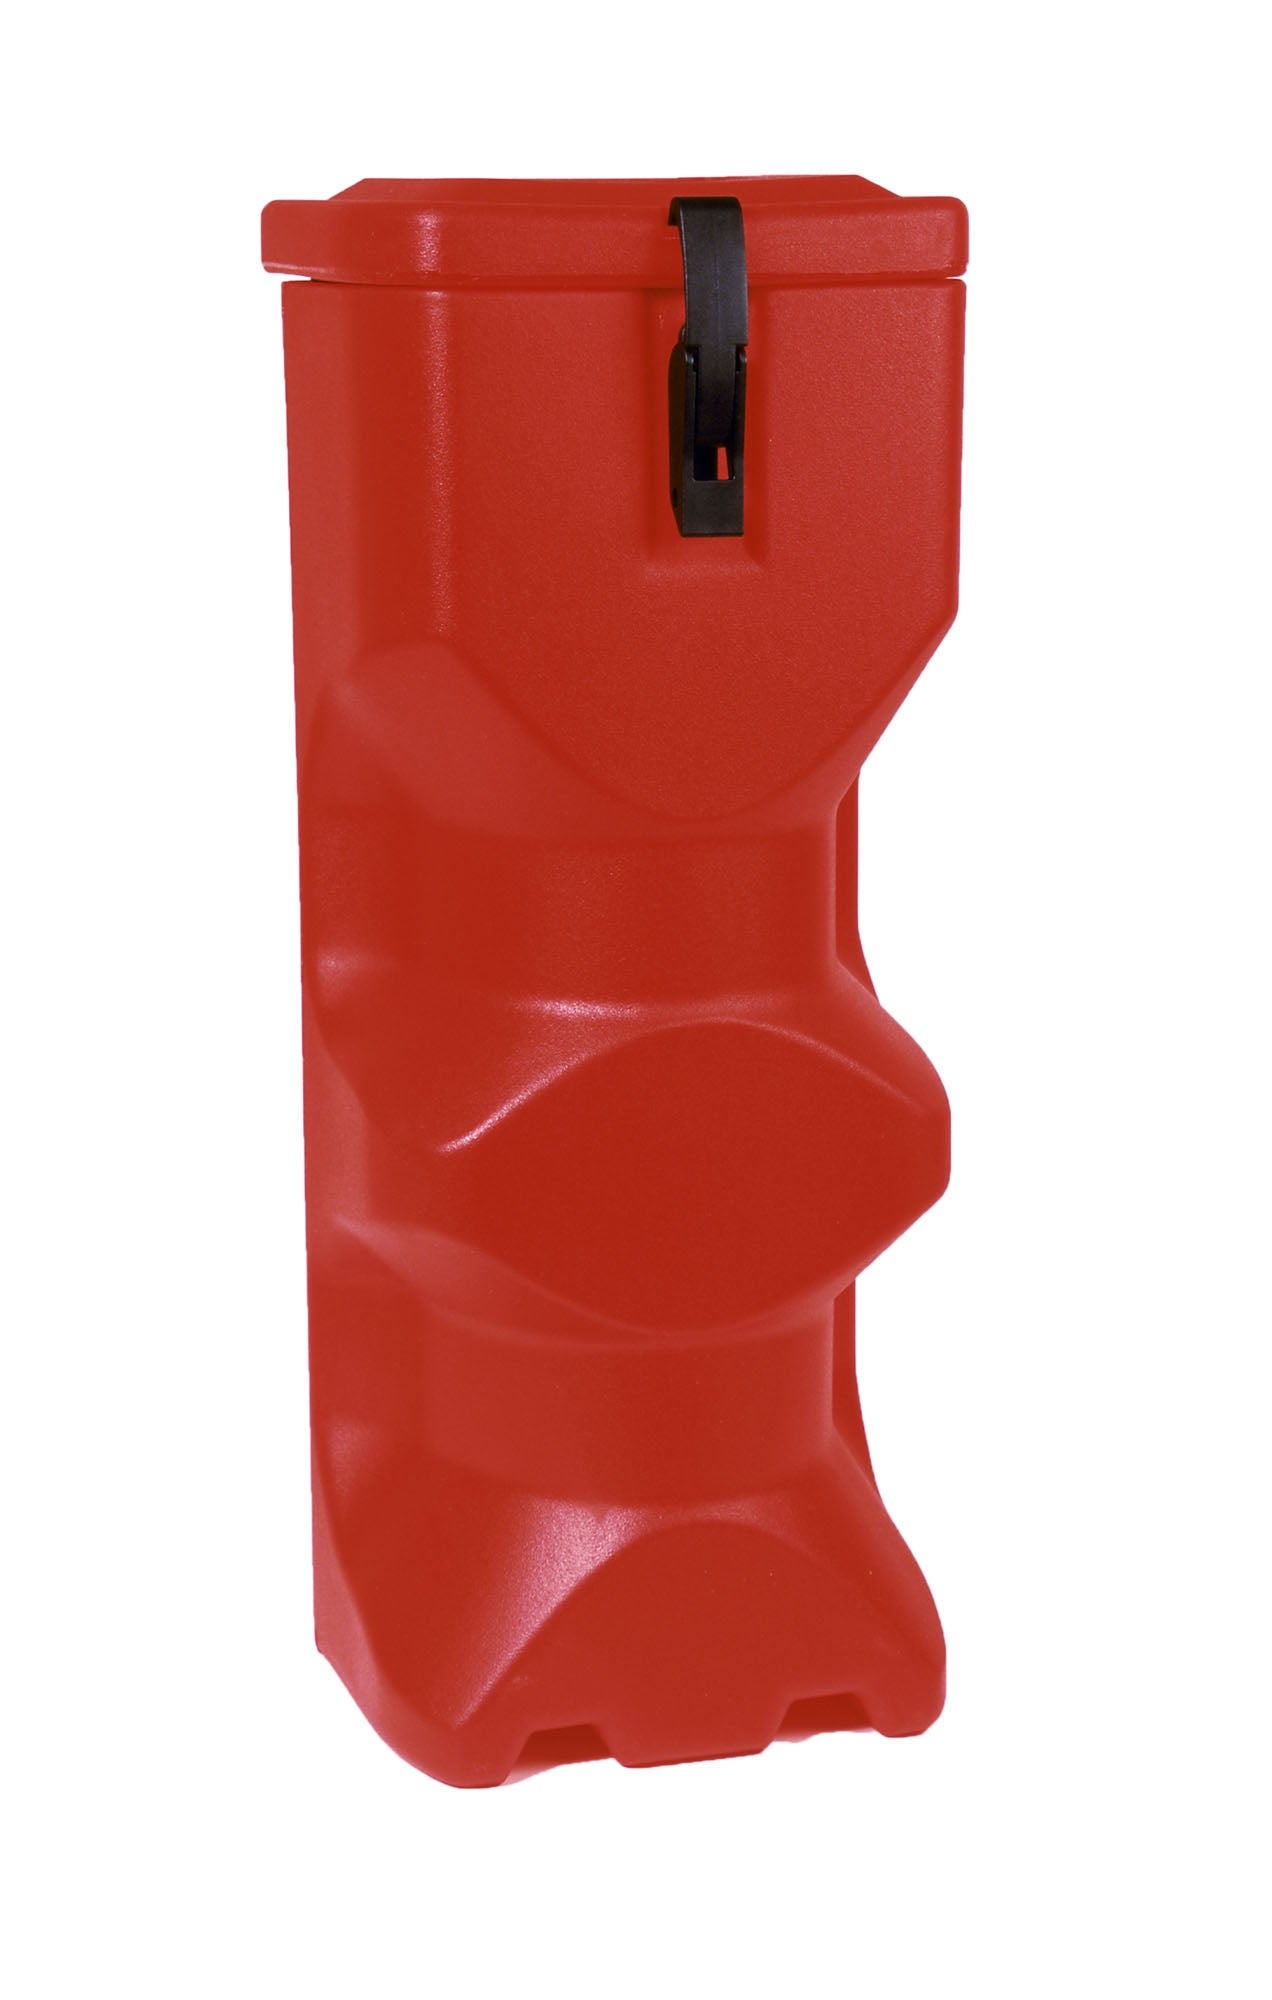 Vehicle Extinguisher Cabinet (6 Kg size) - HartsonFire